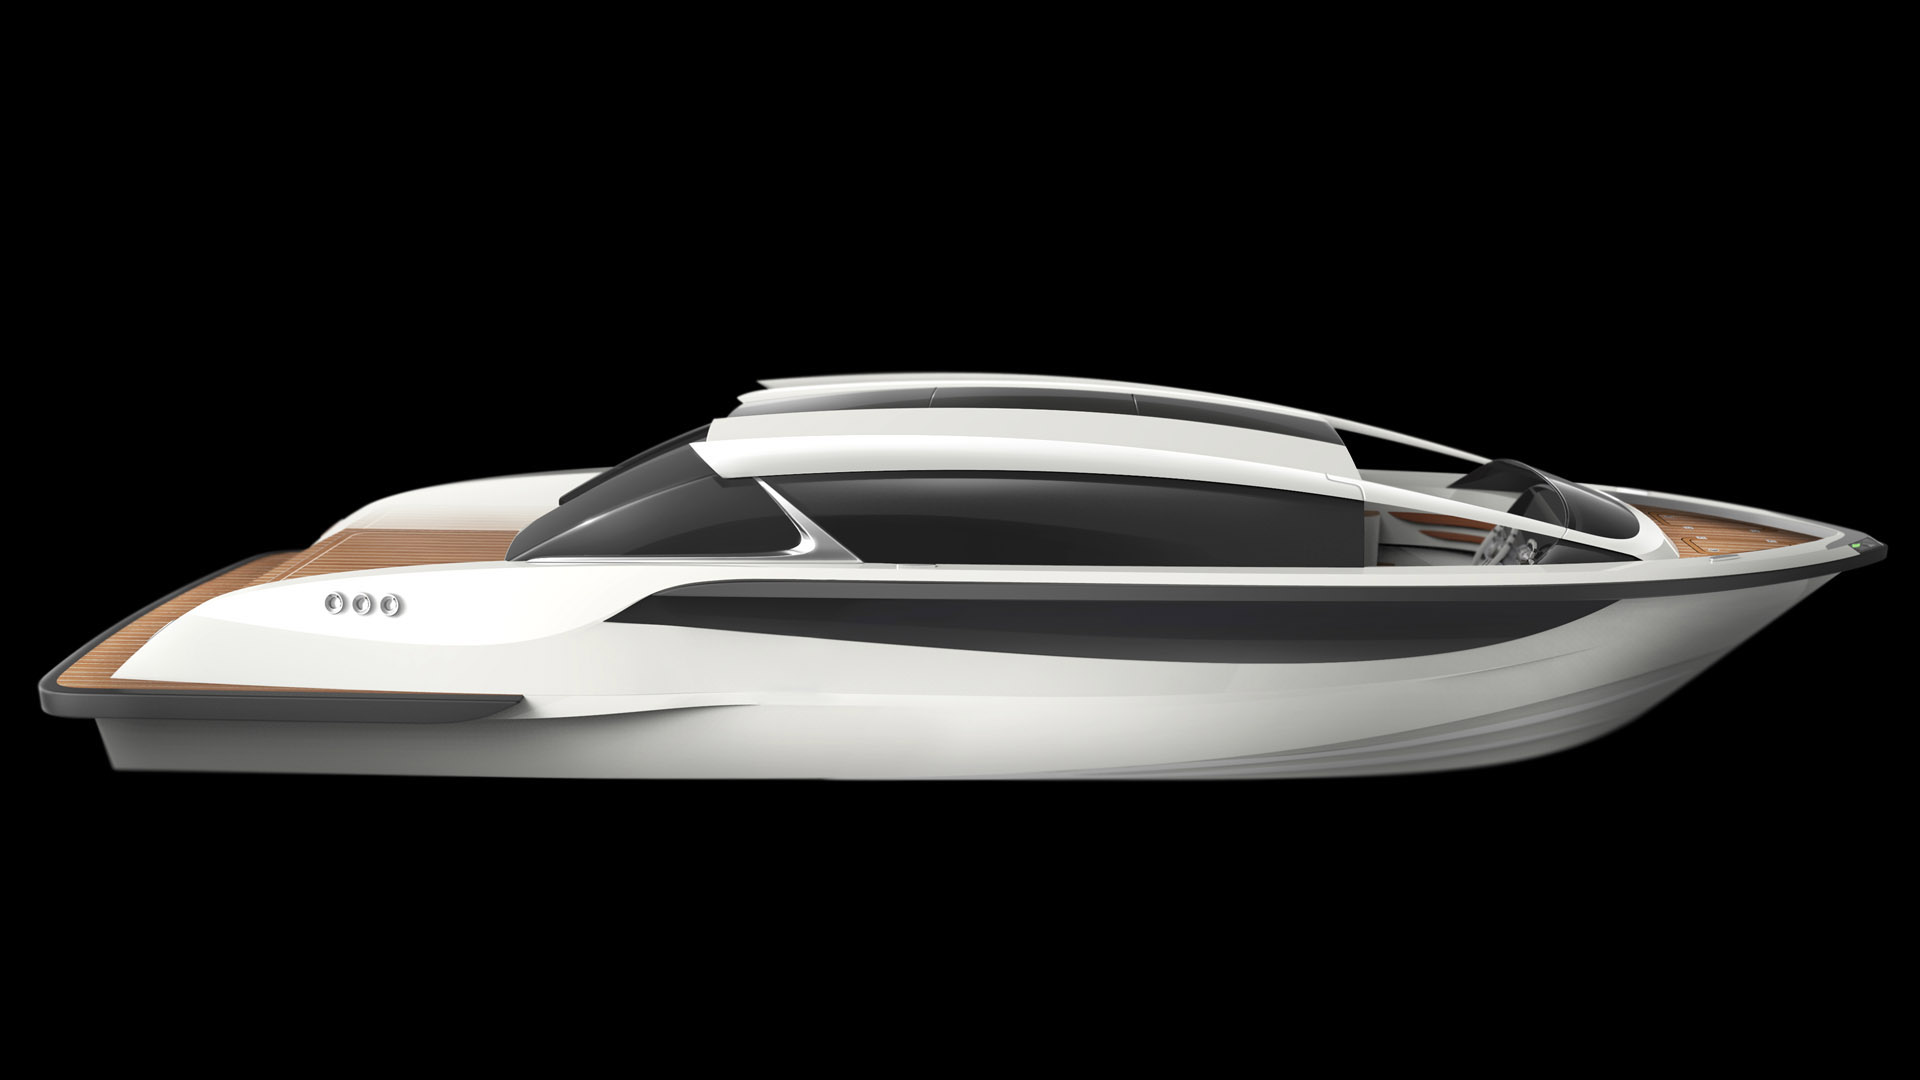 Superyacht tenders and limousines for luxury yachts design by Hamid Bekradi